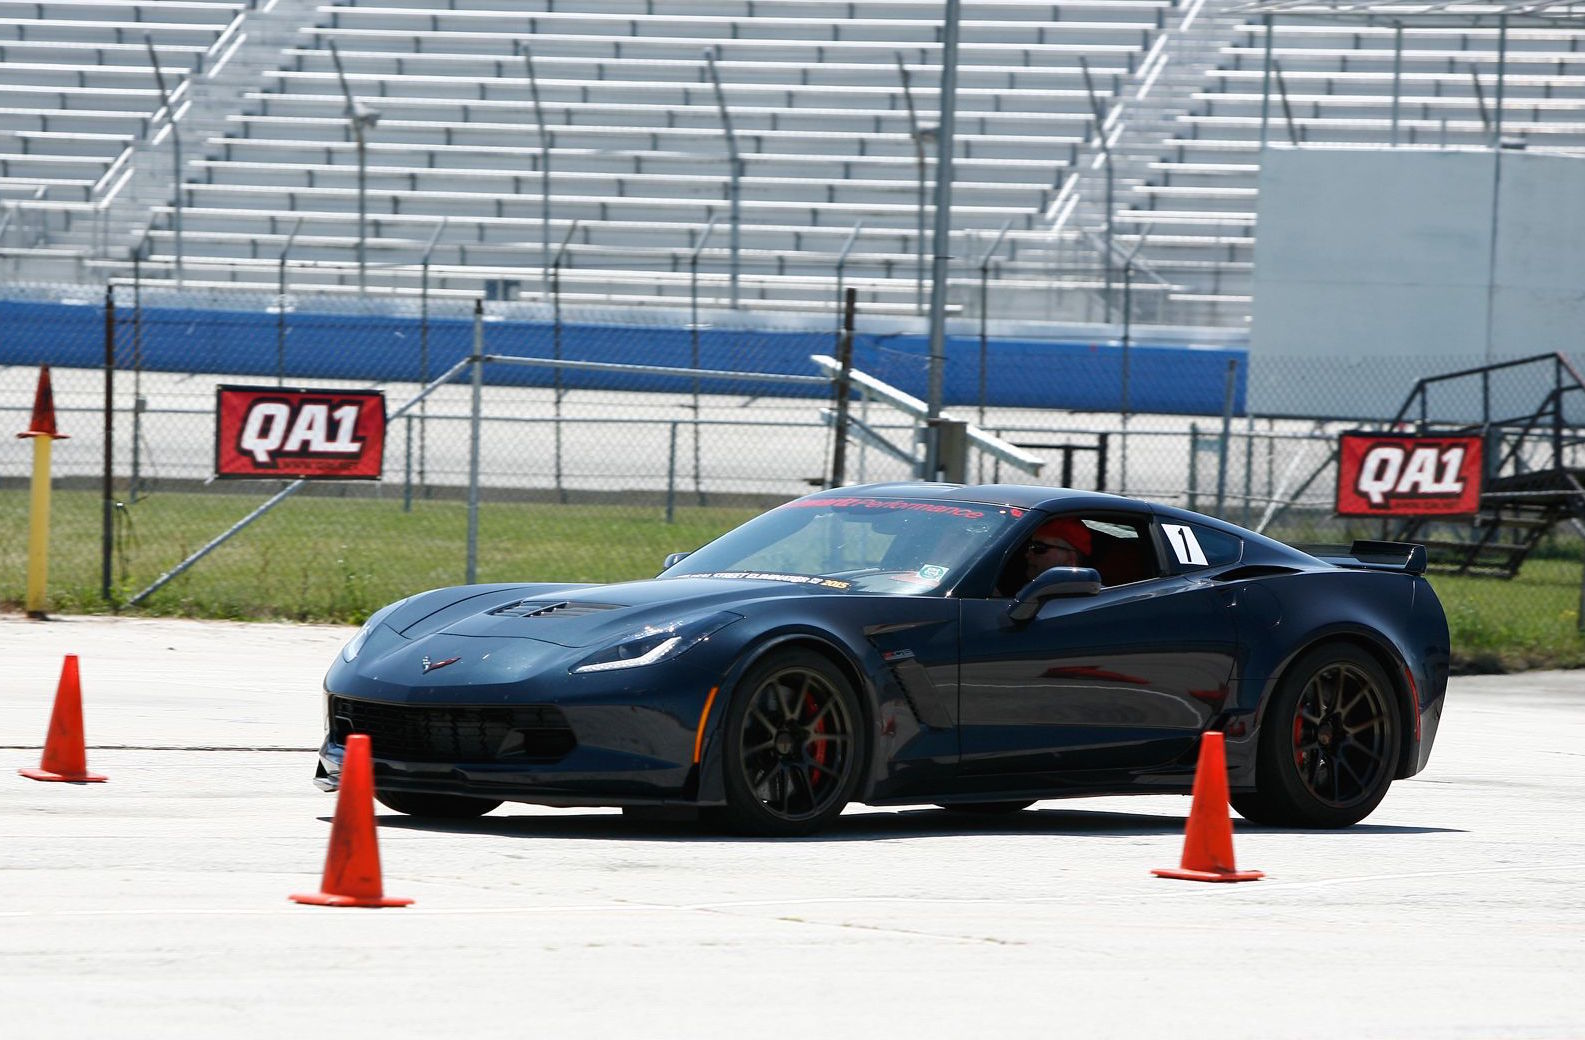 2015 Chevrolet Corvette Z06 | Schwartz Performance C7 Z06 Corvette on Forgeline GA1R Open Lug Cap Edition Wheels